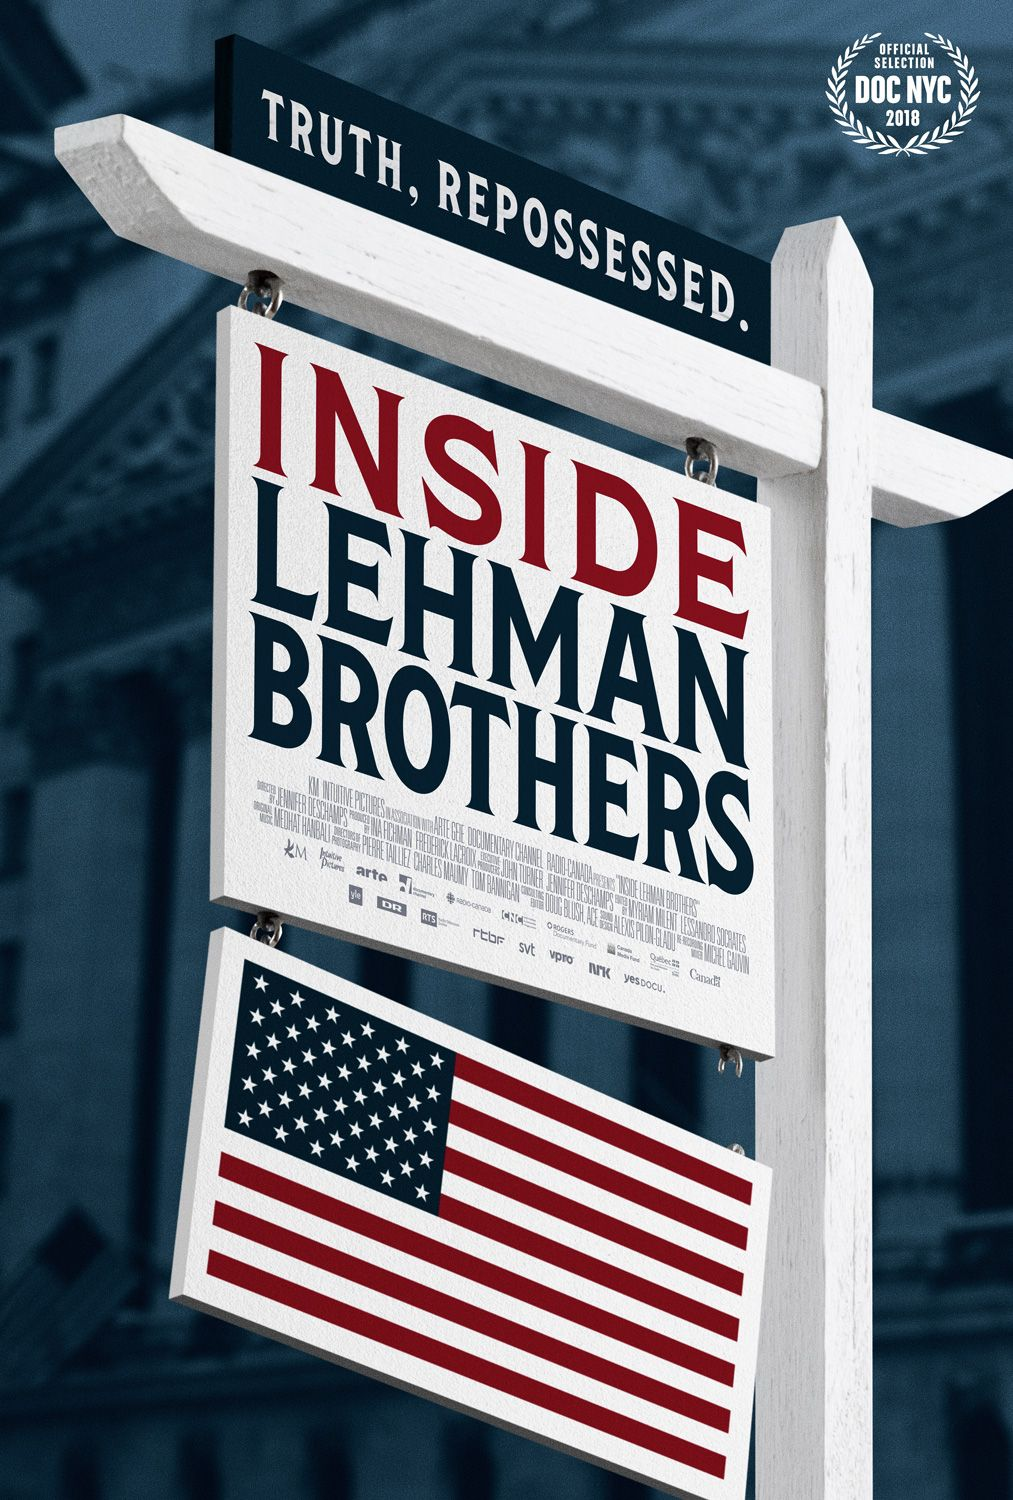 Inside lehman brothers documentary movie poster by www